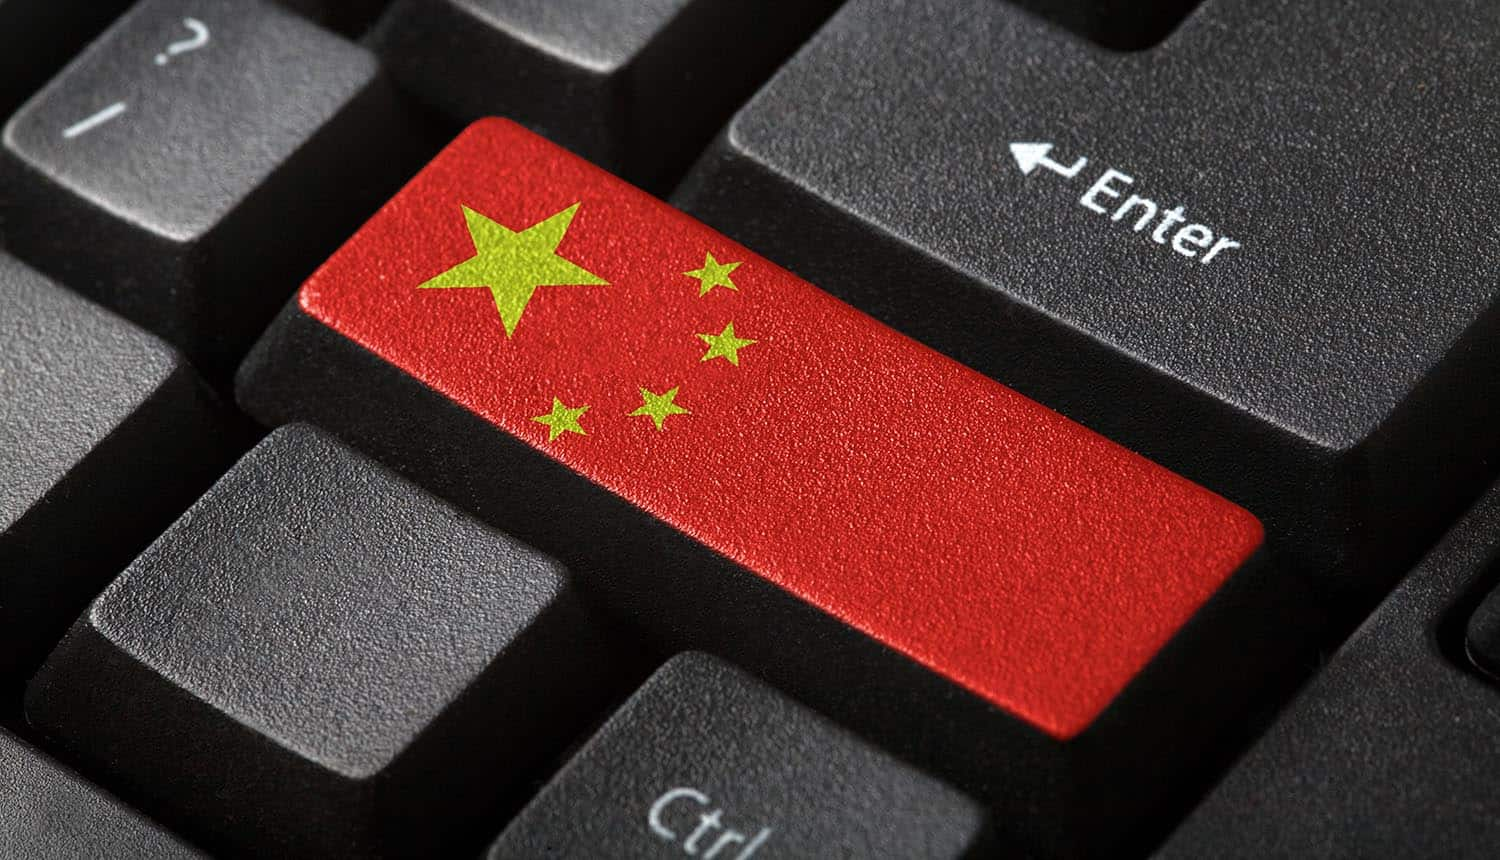 Chinese flag button on keyboard showing Chinese APT groups may have been exploiting vulnerabilities on Linux servers for nearly a decade